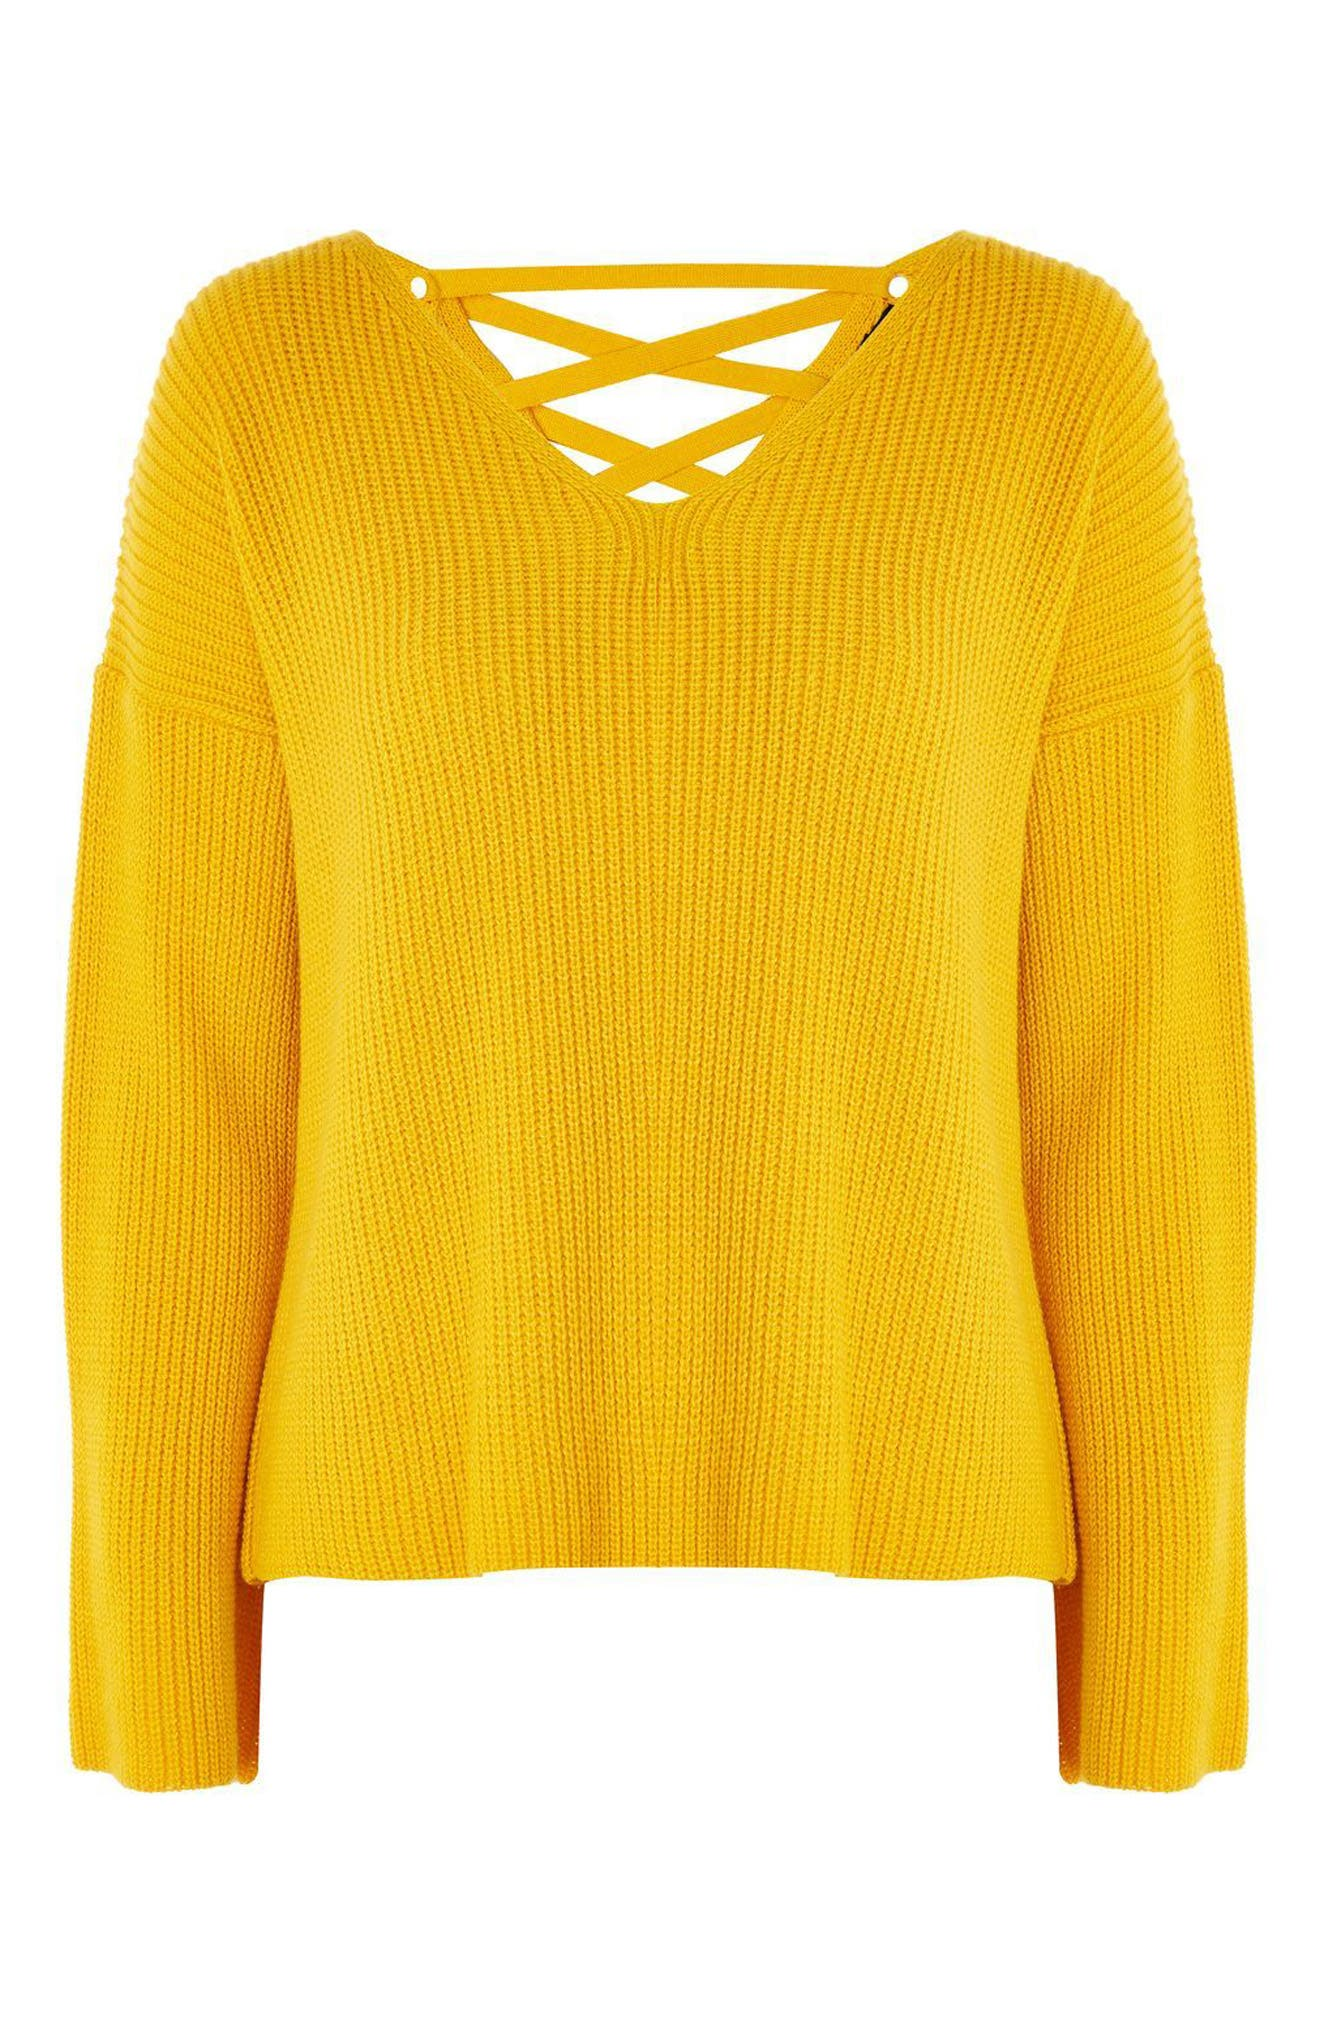 Lattice Back Sweater,                             Alternate thumbnail 3, color,                             Yellow